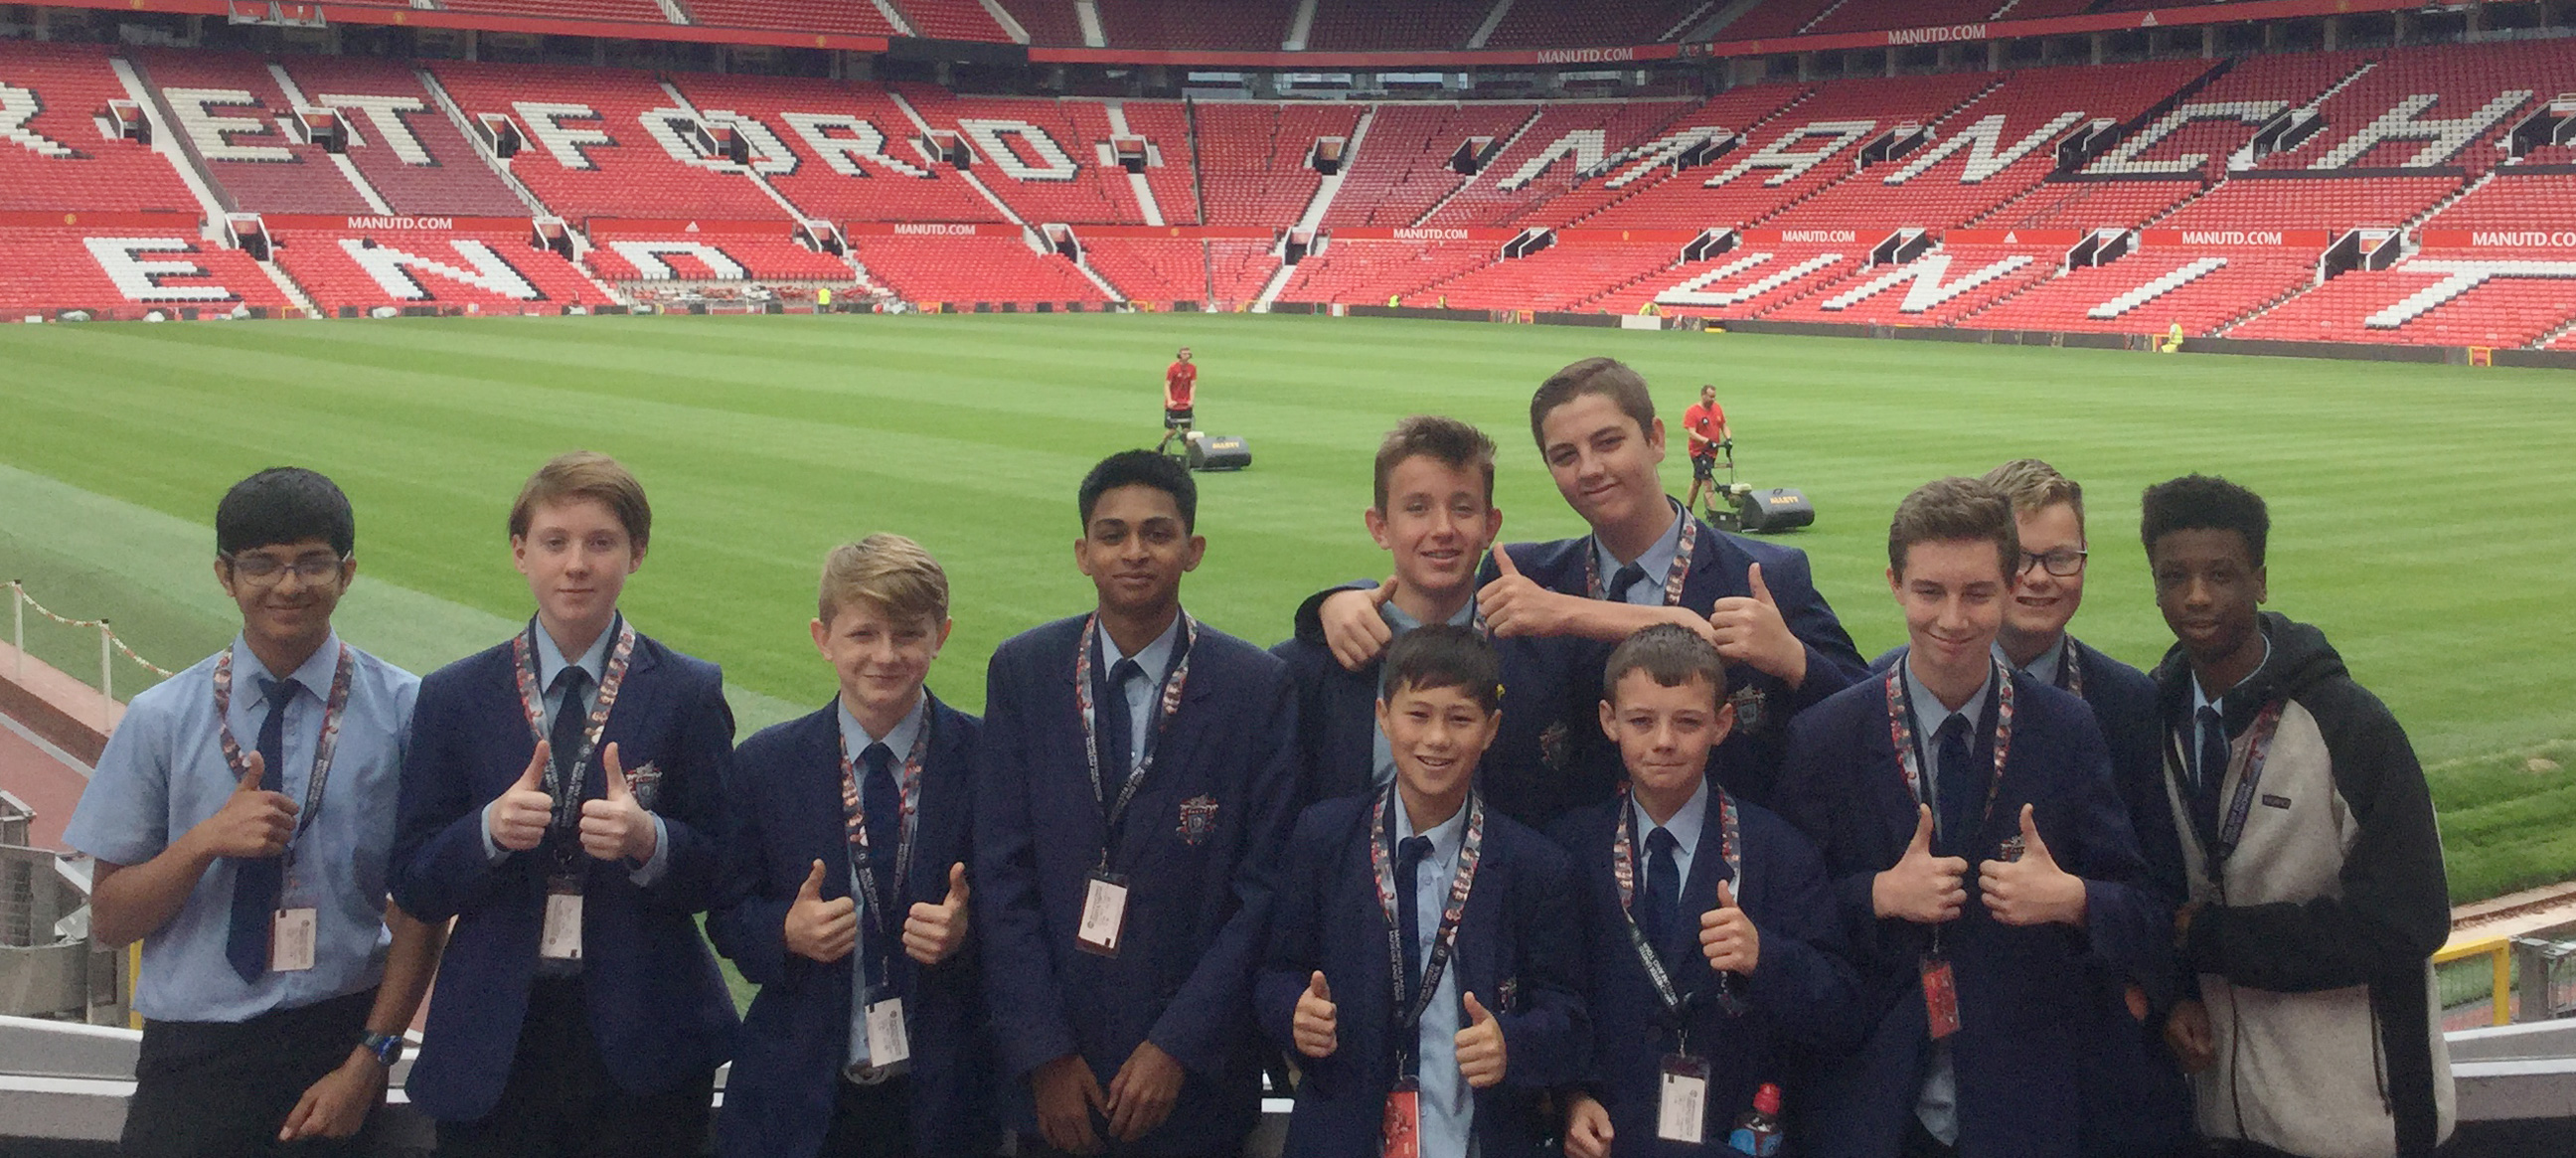 Manchester United Official Tour